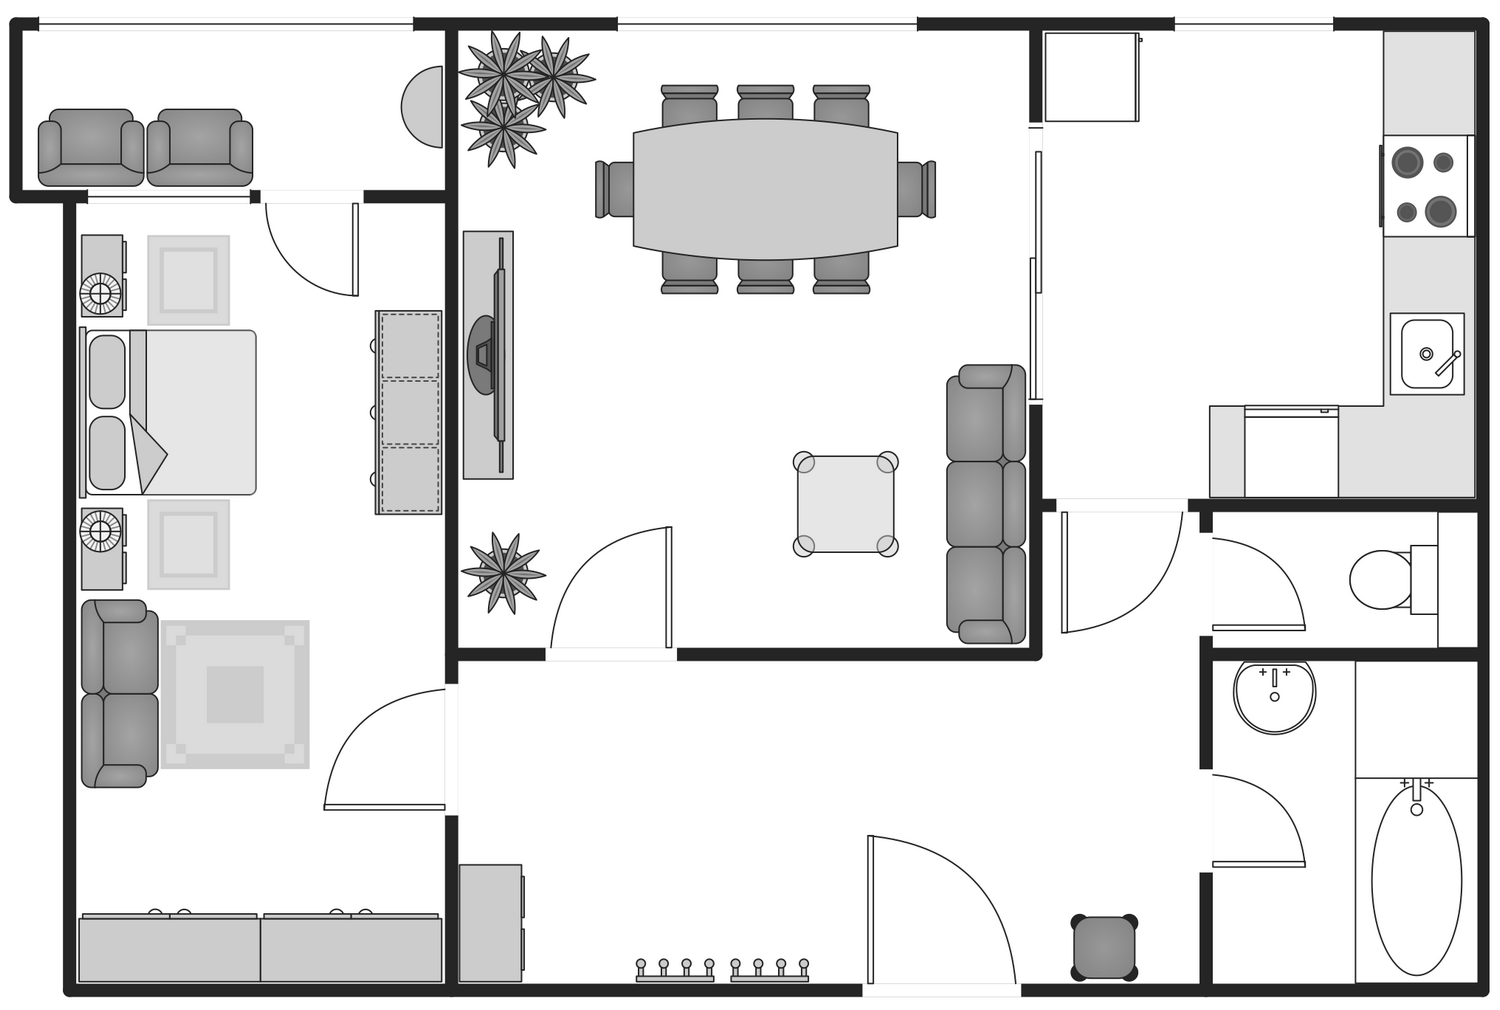 Basic Floor Plan - Apartment Plan